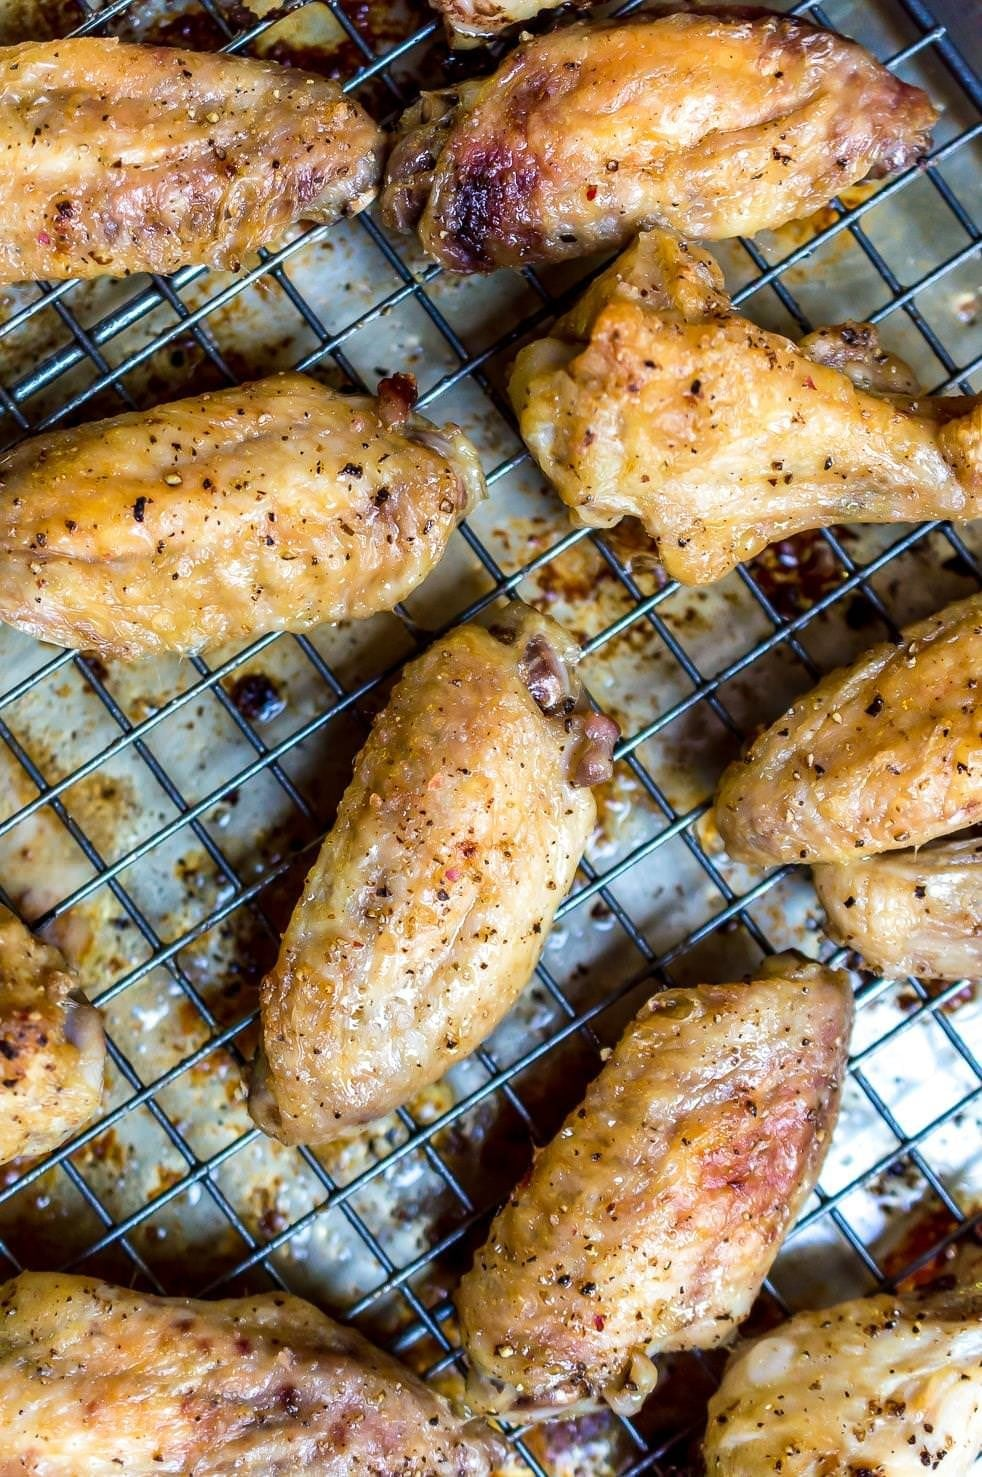 Oven Baked Chicken Wings are the ultimate party food! They are quick, easy, inexpensive and great for feeding a crowd. Plus, you can flavor however you like. These Chicken Wings with Cilantro Garlic Chimichurri are a fun new way to serve party wings! This is a Whole 30 Paleo compliant recipe, grain free, gluten free and dairy free. #whole30recipes #paleodiet #glutenfreerecipes #dairyfreerecipes #chickenwings